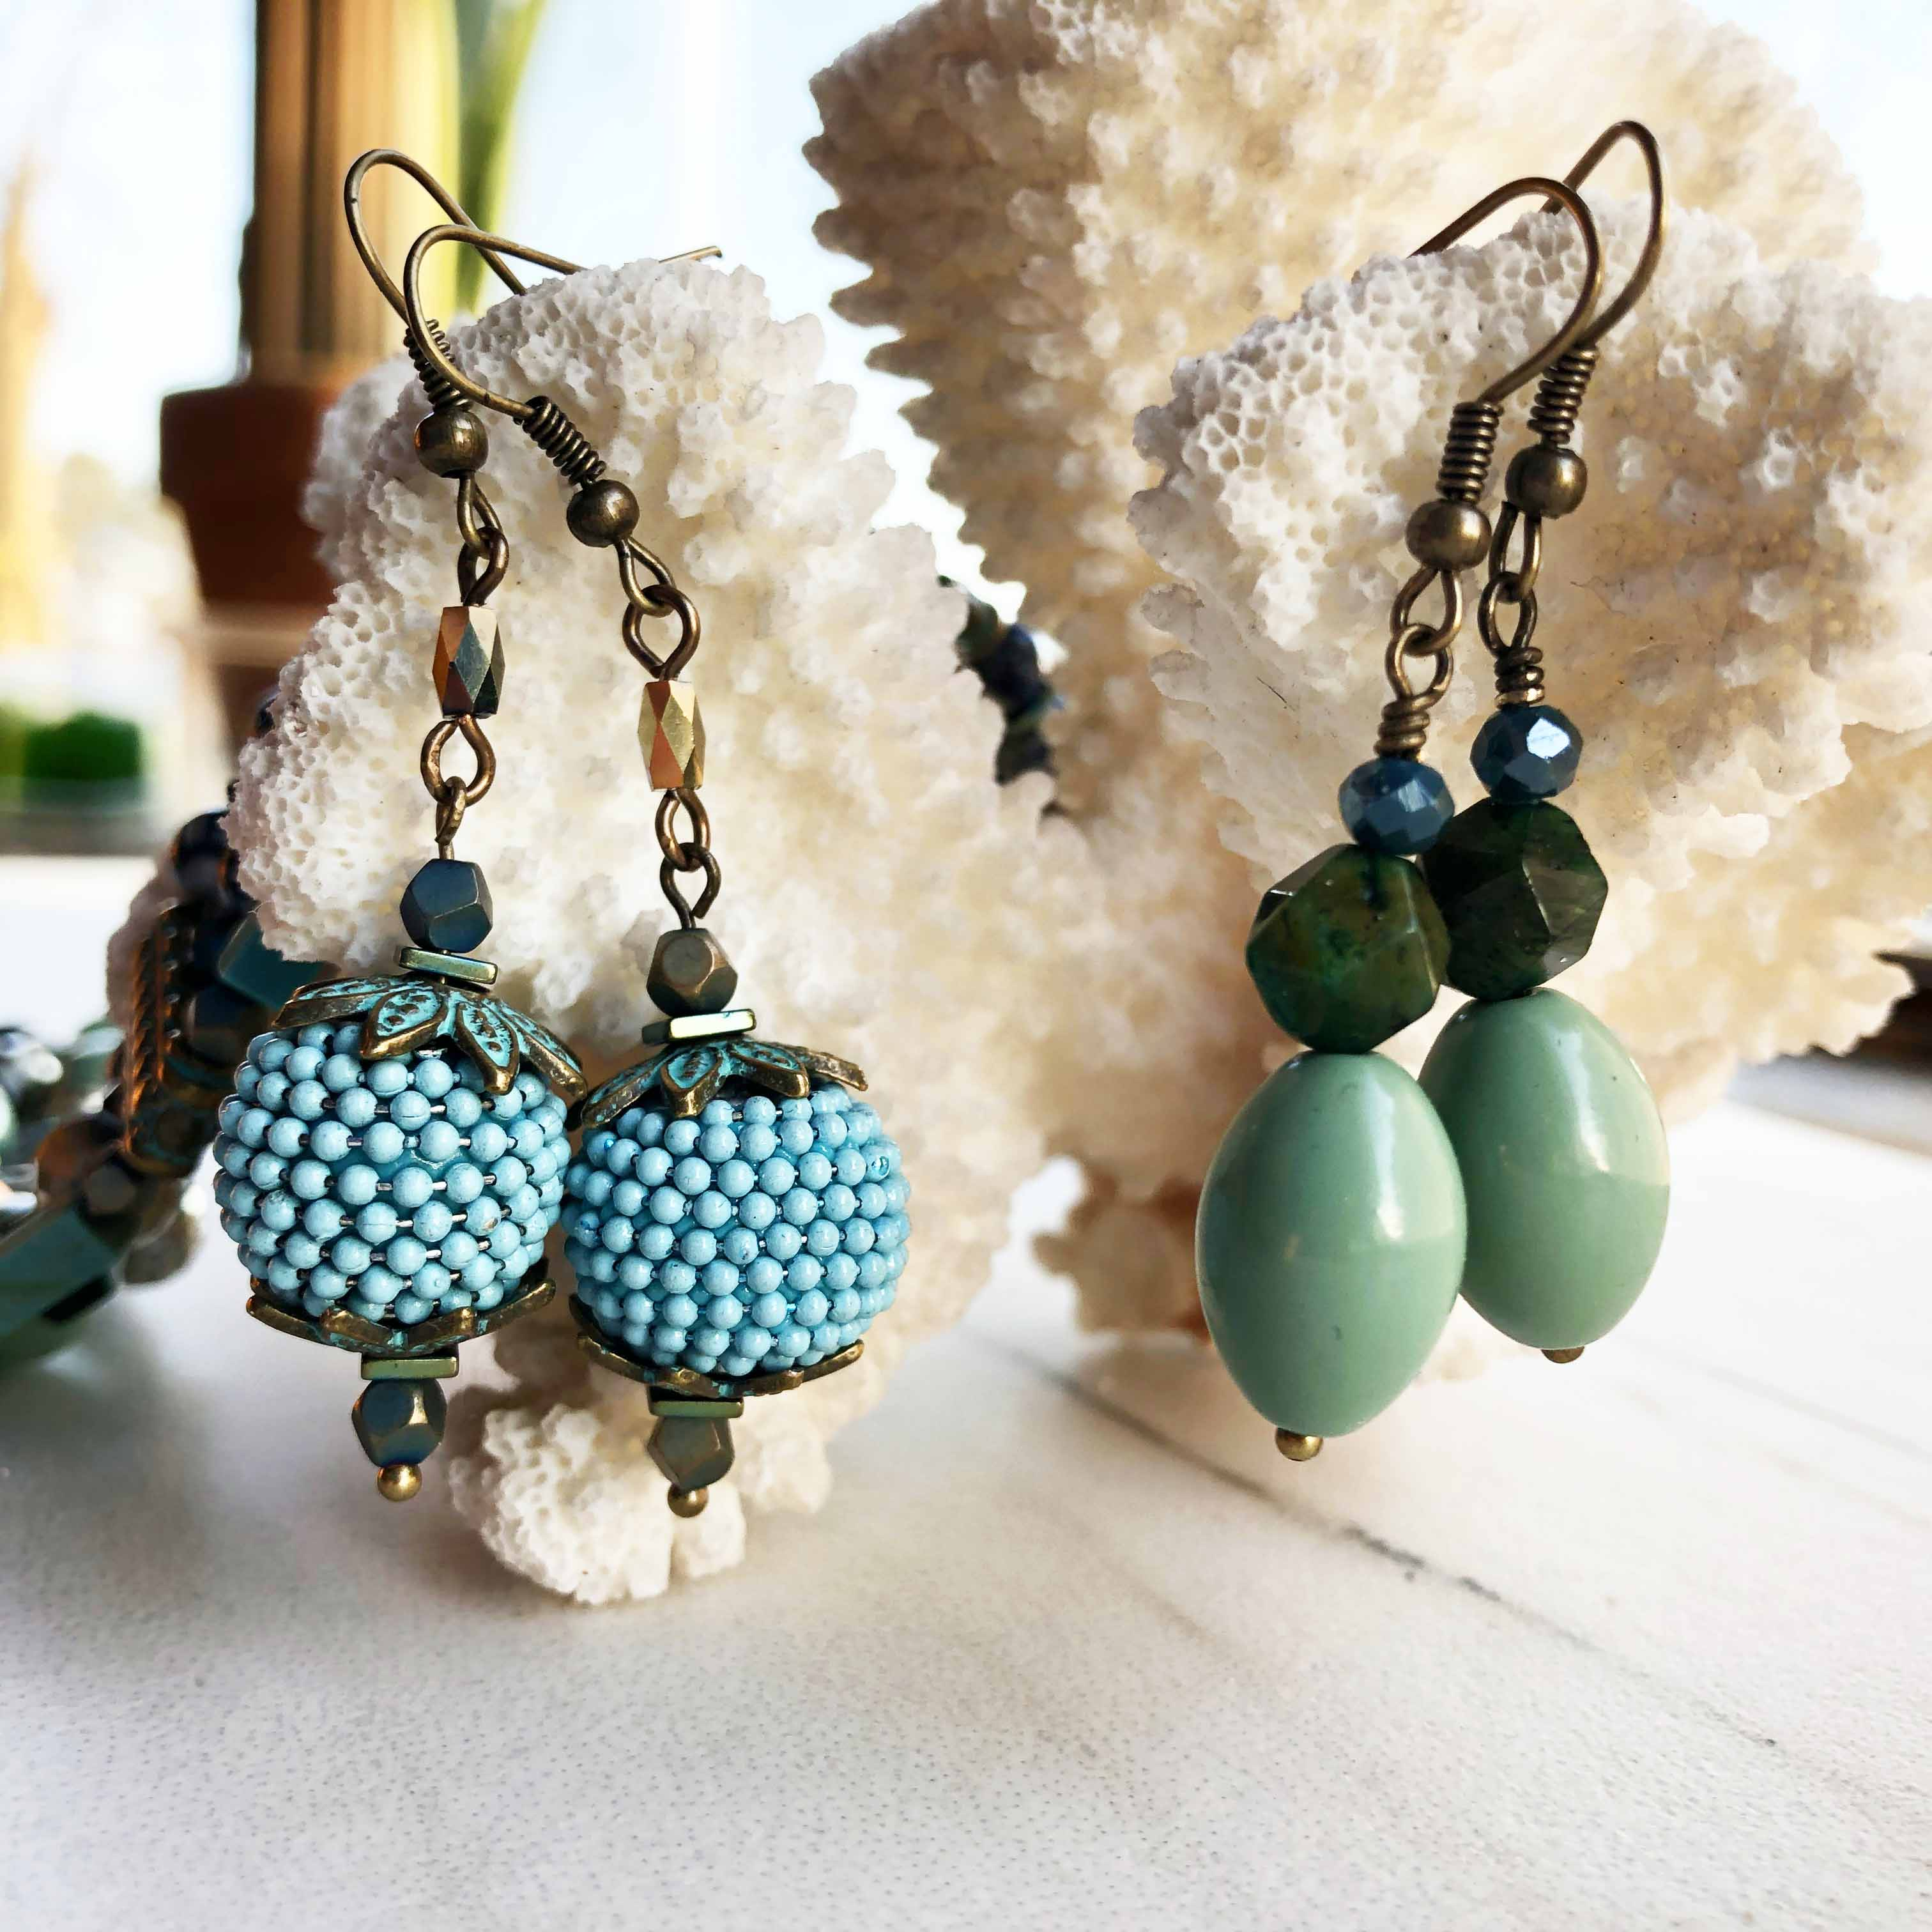 Blue and turquoise beaded earrings hanging on coral